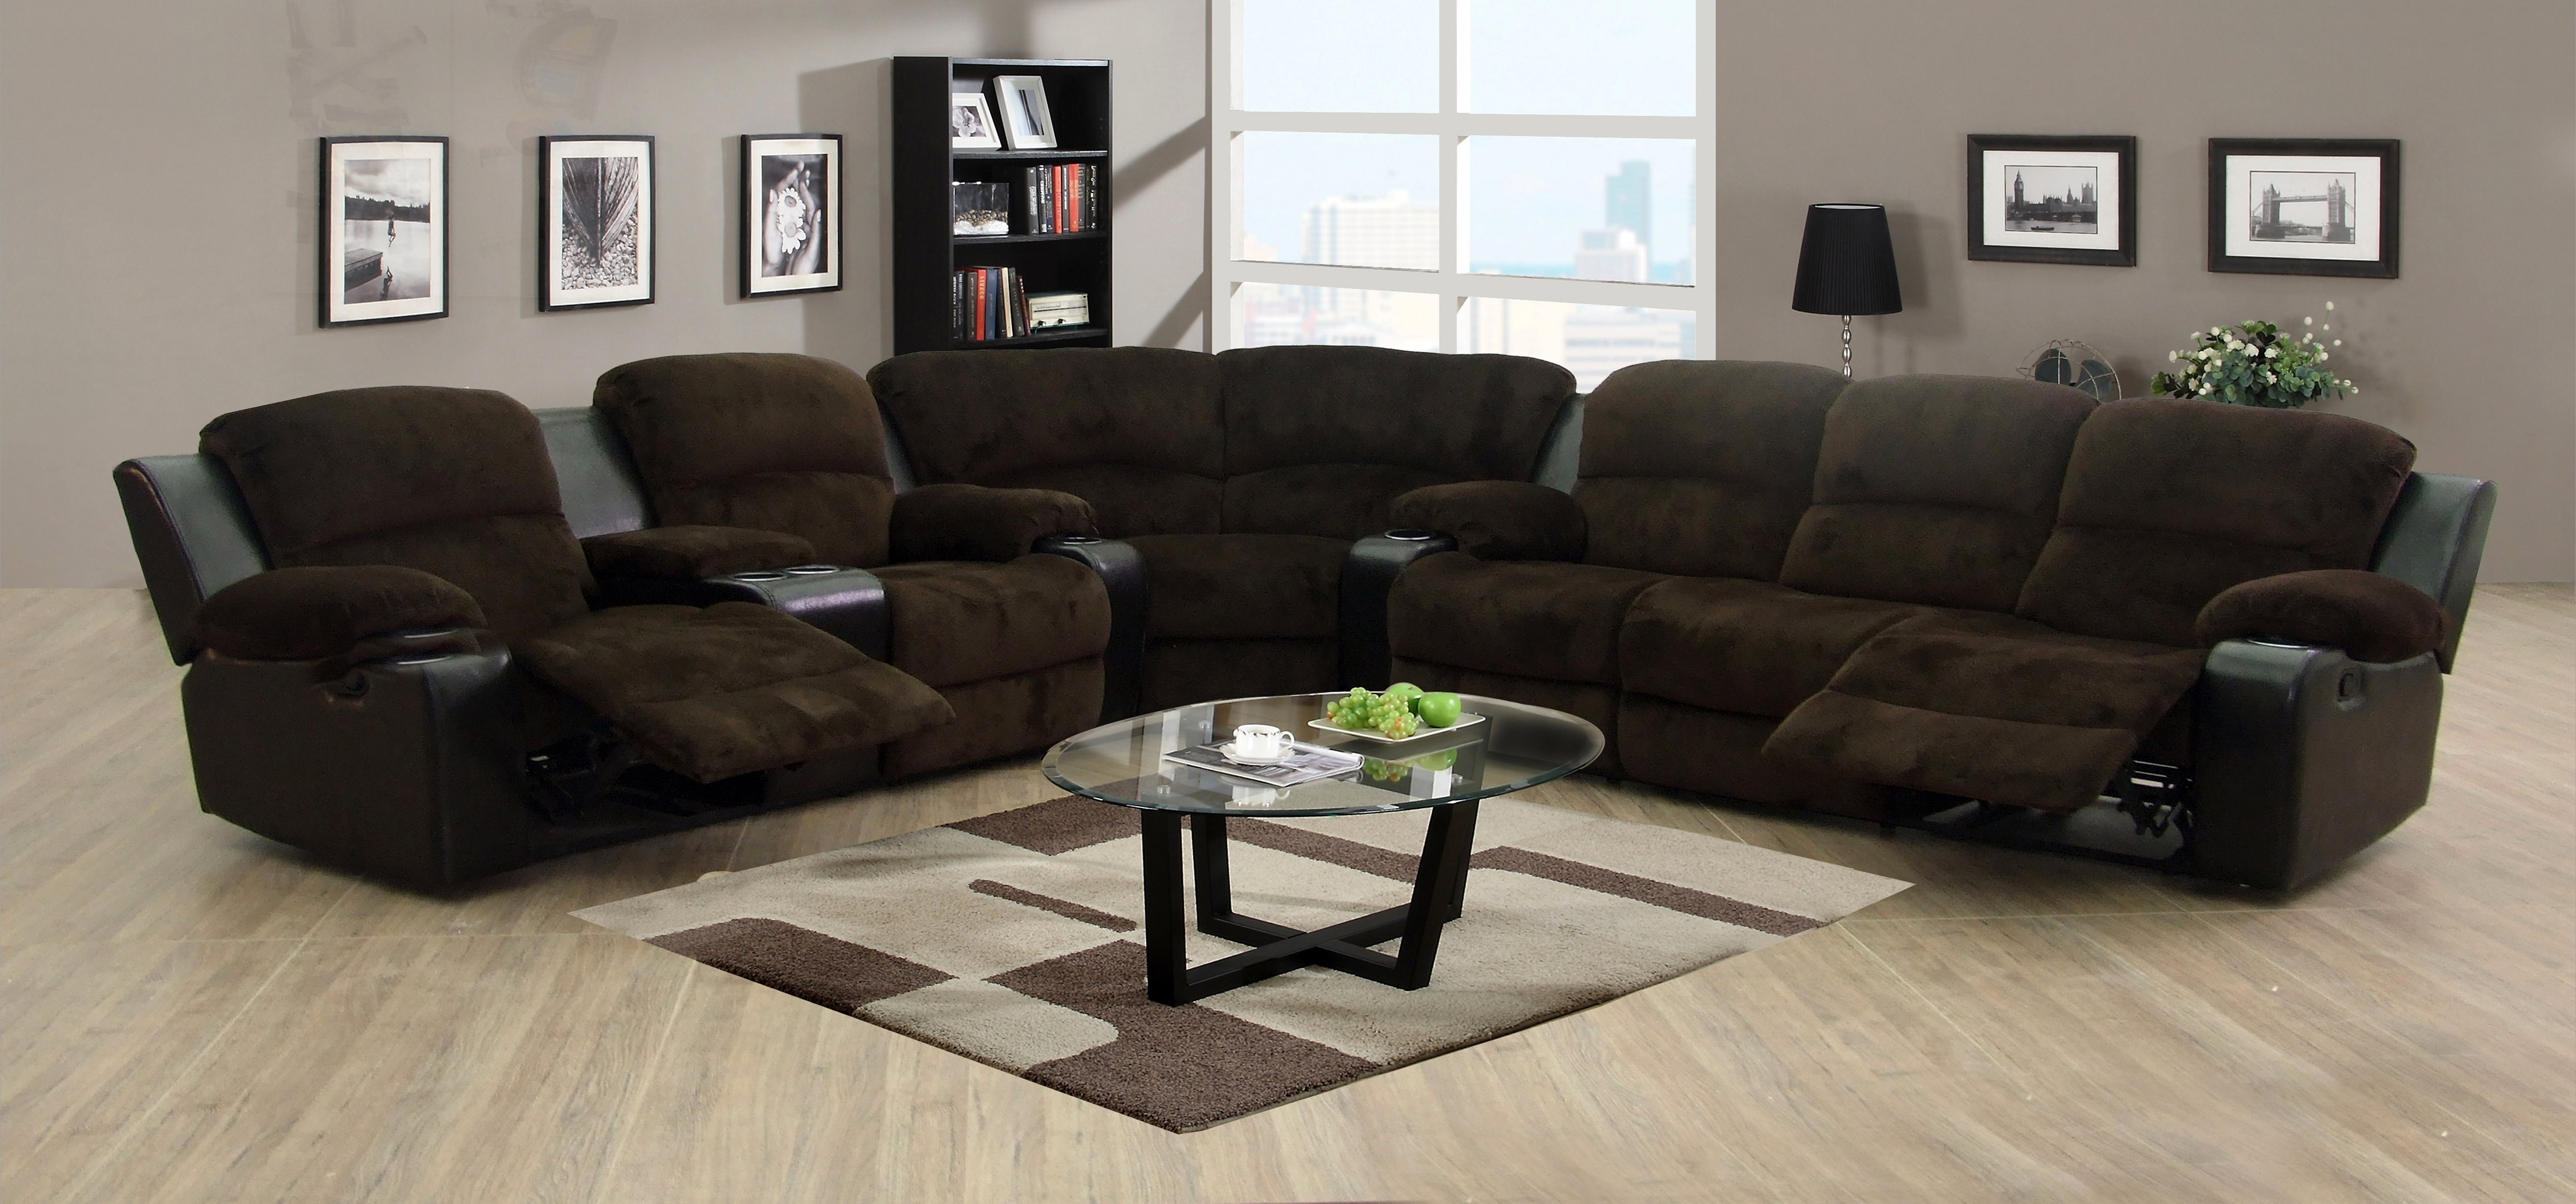 Sectional Sofas With Cup Holders Intended For Popular Best Sectional Sofas With Recliners And Cup Holders Gallery (View 9 of 15)